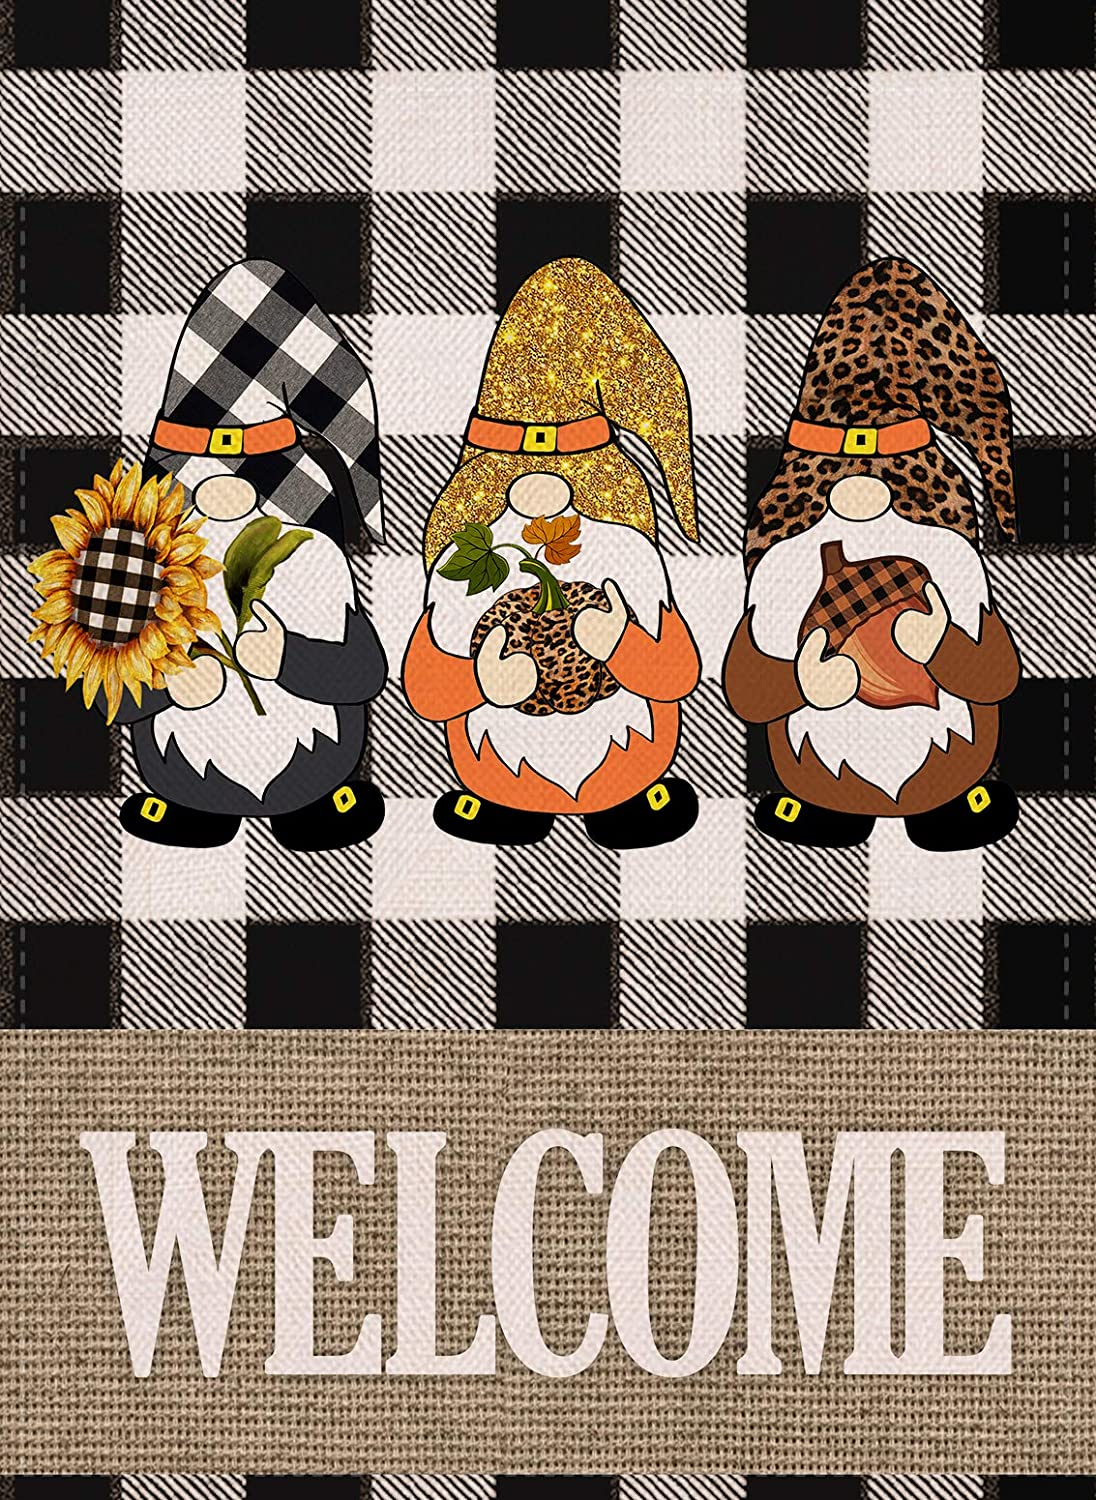 Covido Welcome Fall Gnomes Home Decorative Garden Flag, Buffalo Plaid Check Leopard House Yard Tomte Decor Autumn Outdoor Small Flag Sunflower Pumpkin Acorn Sign Thanksgiving Outside Decorations 12x18